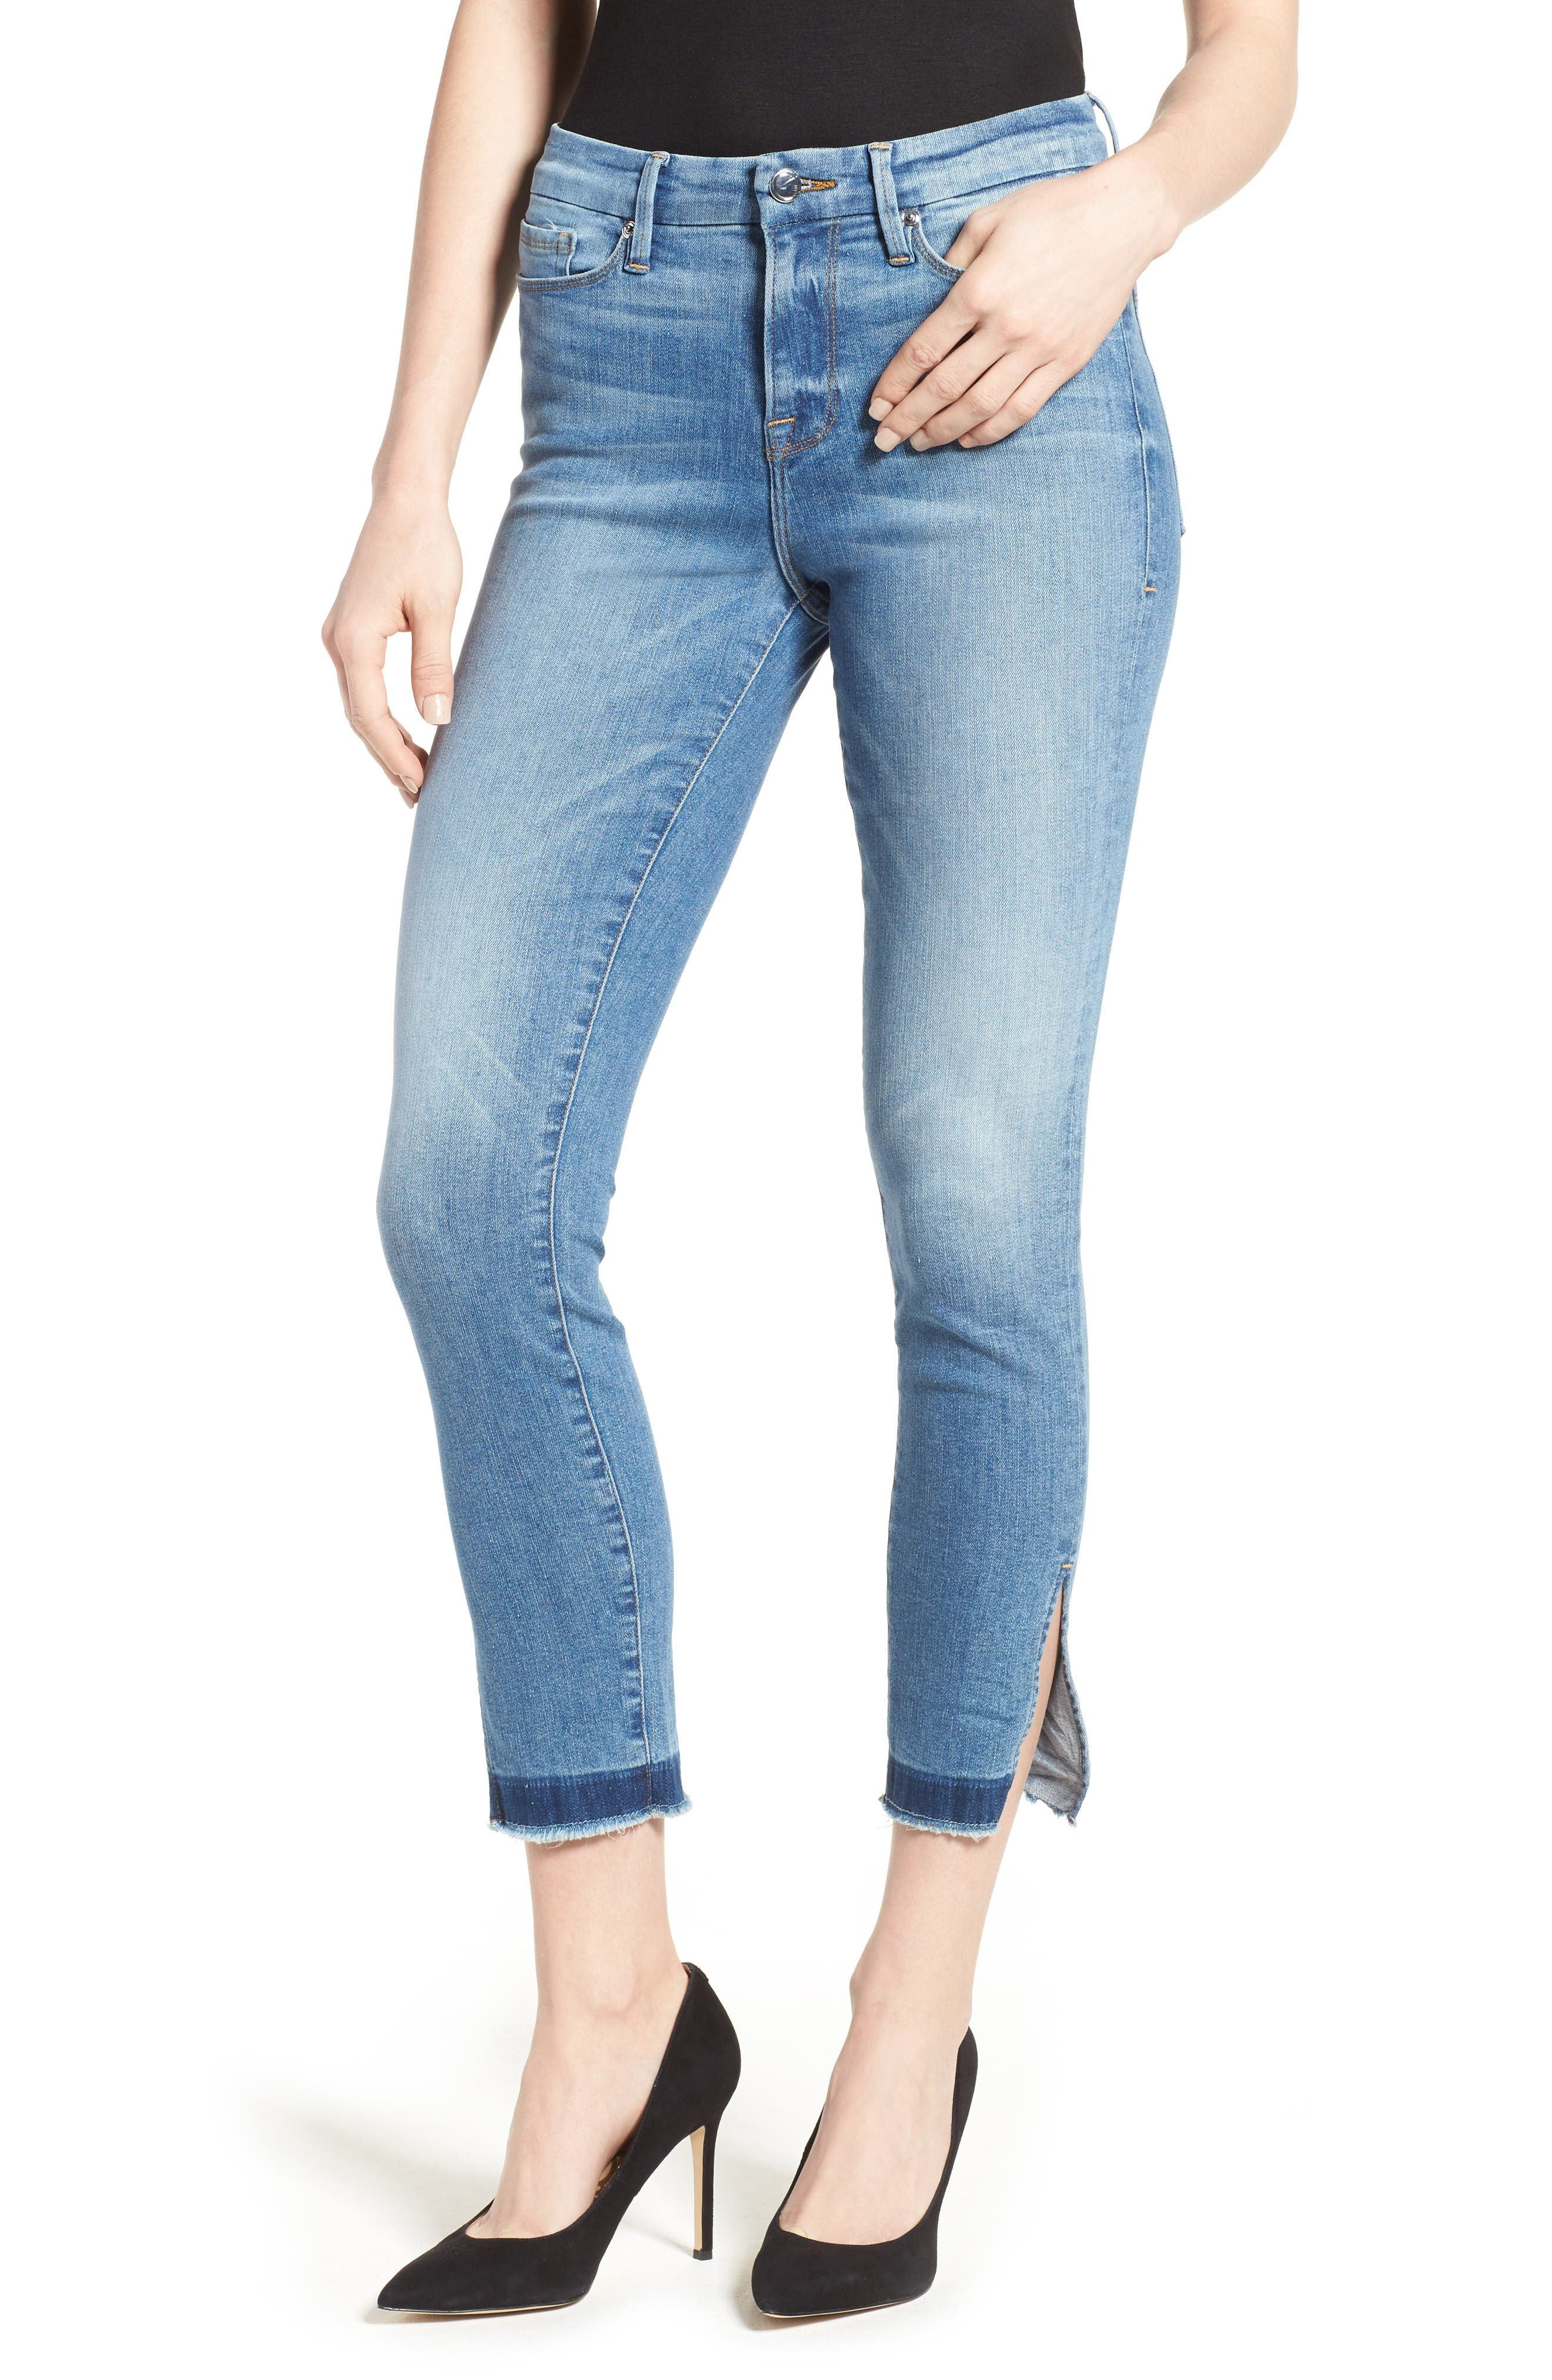 Main Image - Good American Good Legs High Rise Split Hem Crop Skinny Jeans (Blue 024) (Extended Sizes)